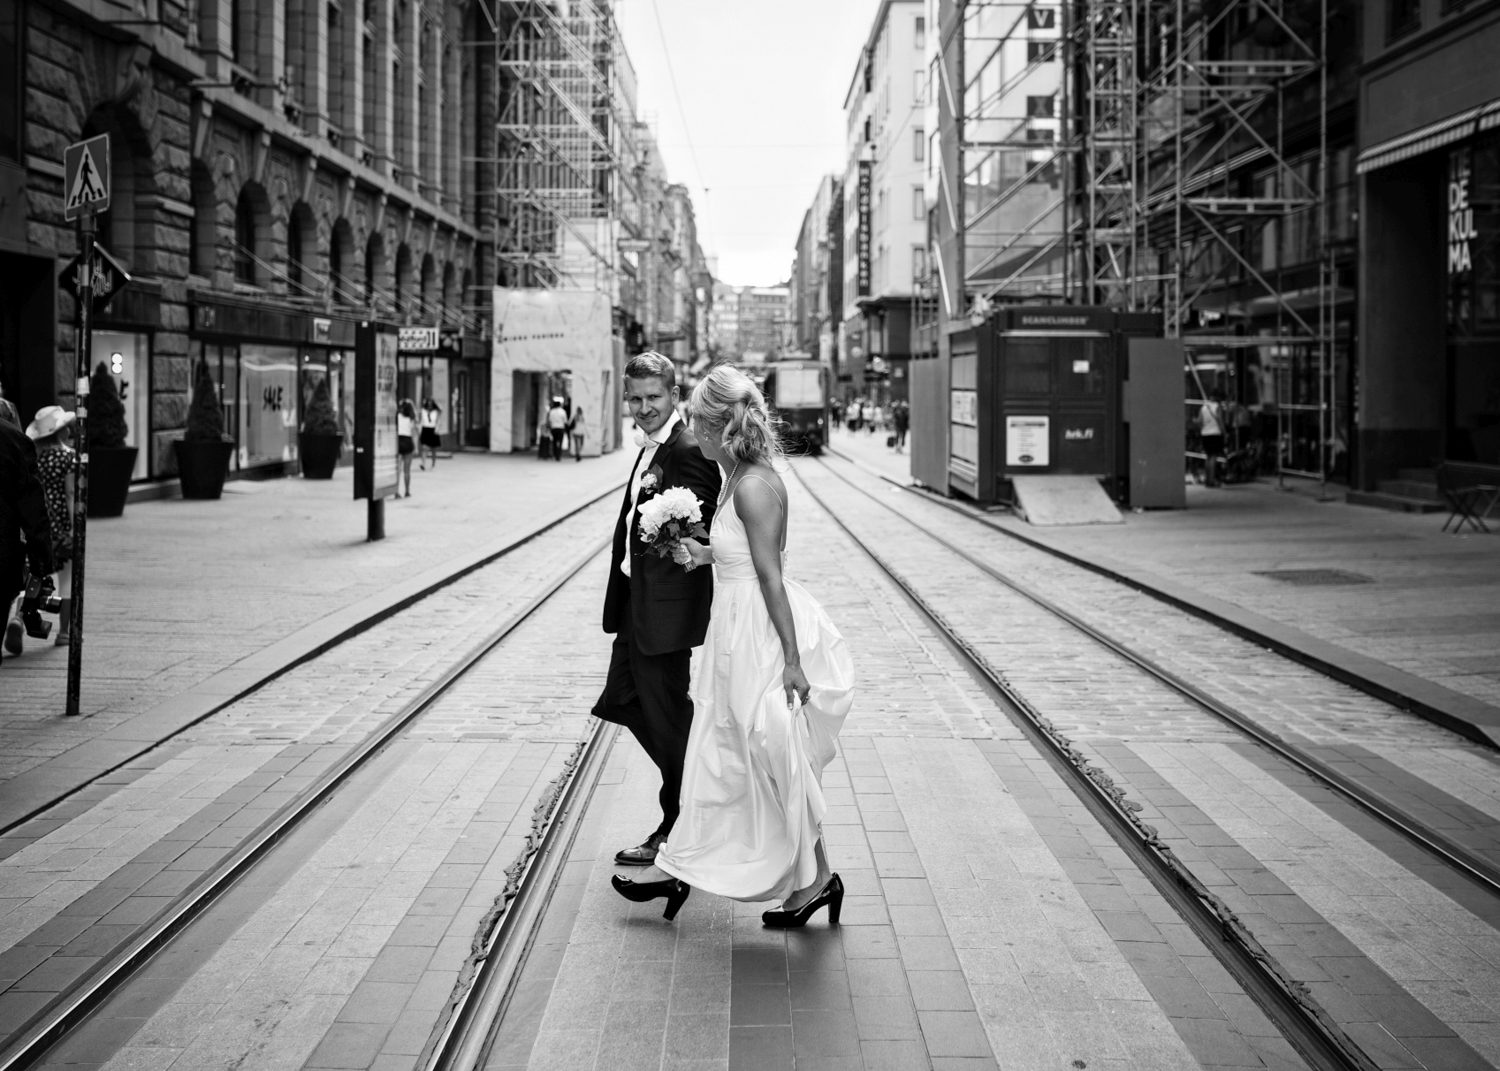 Bride and groom cross the street with tram lines in Helsinki Finland.